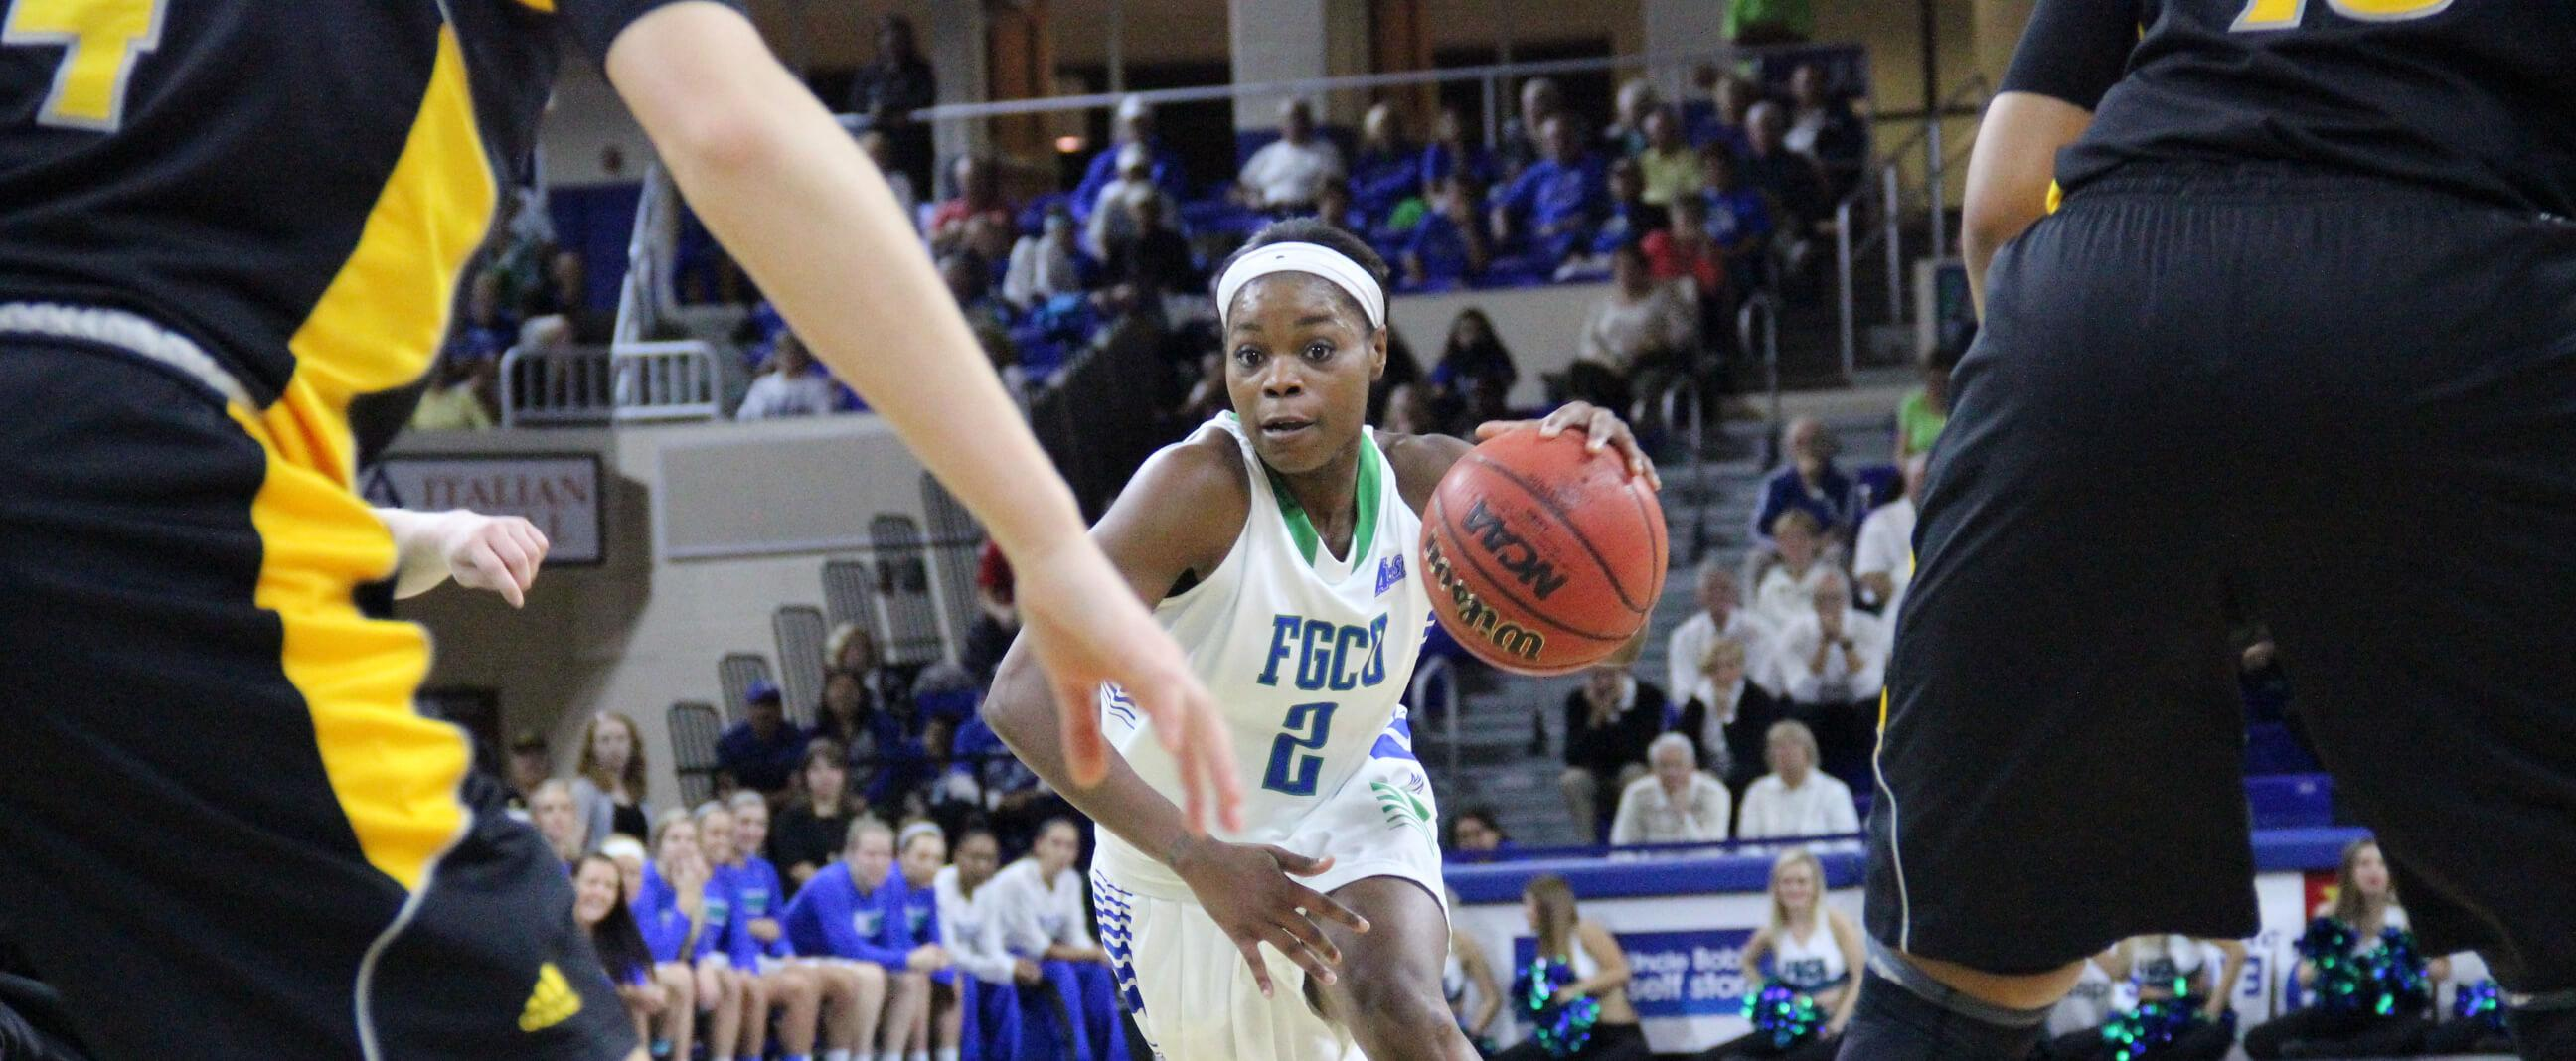 Atwater leads Eagles with dominant performance over KSU